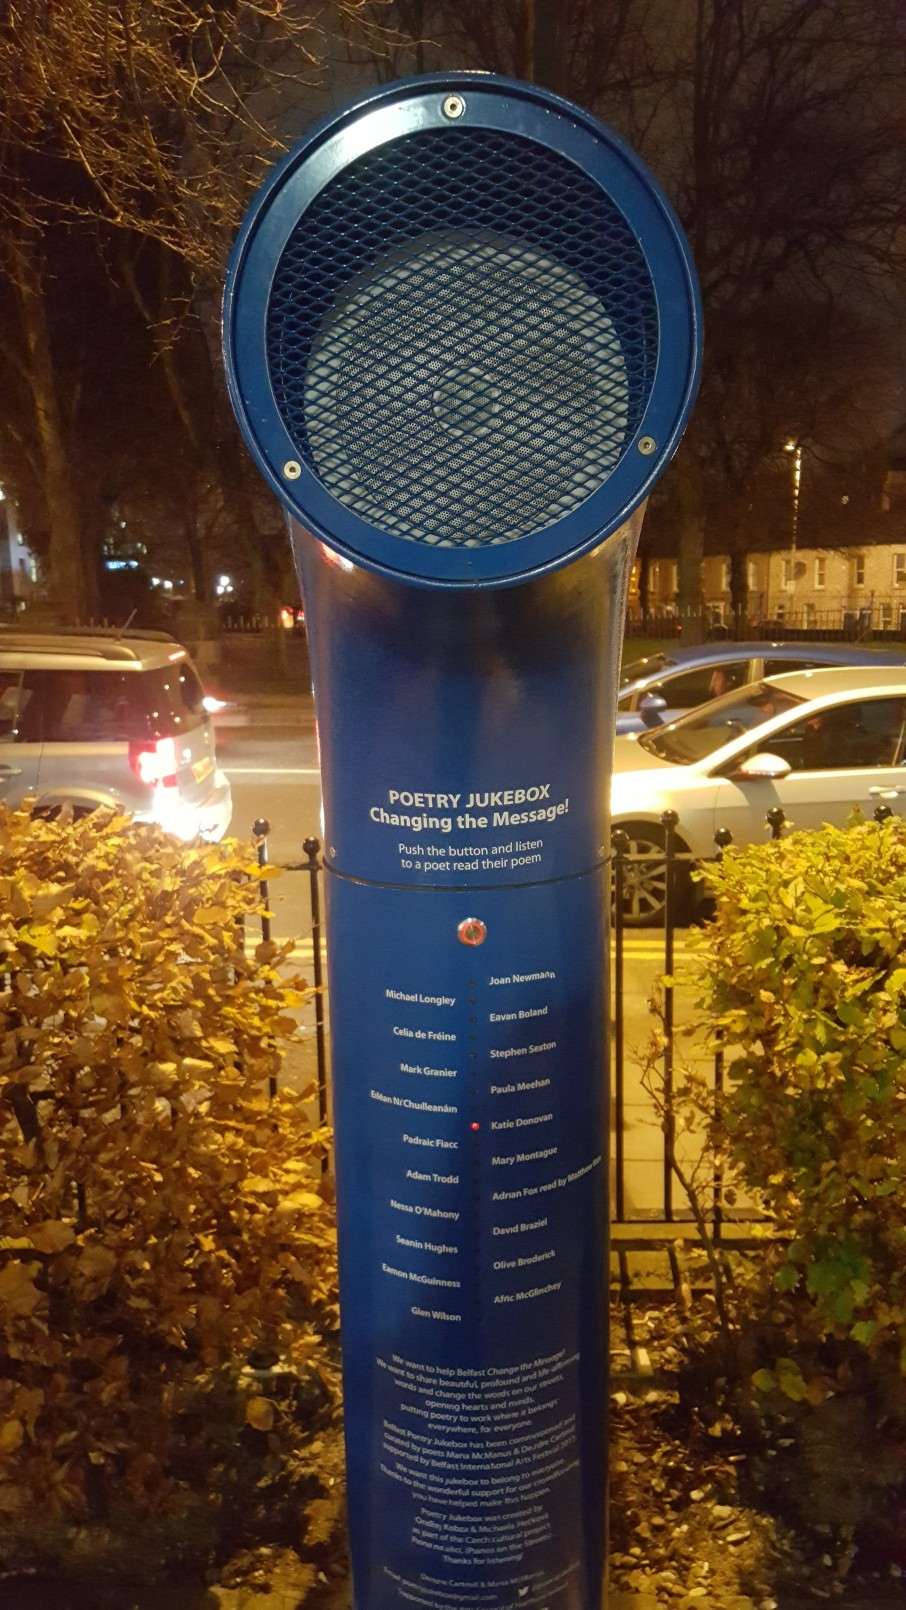 Poetry jukebox